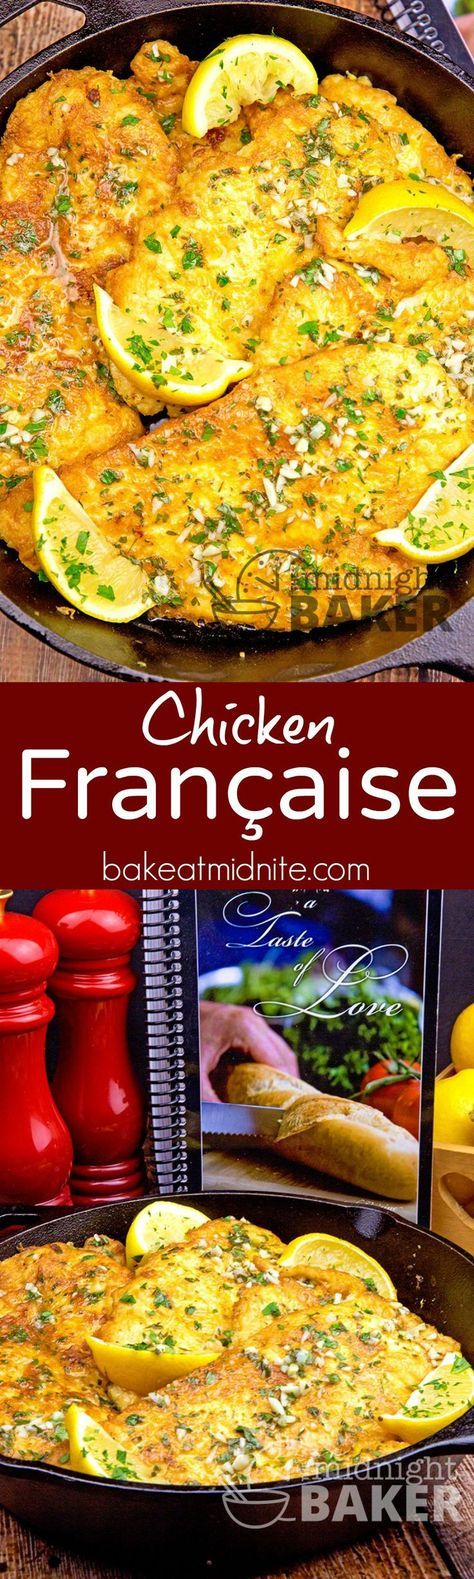 This delicious chicken francaise recipe comes from one of the best Italian cooks I've ever met and is from her new cookbook,